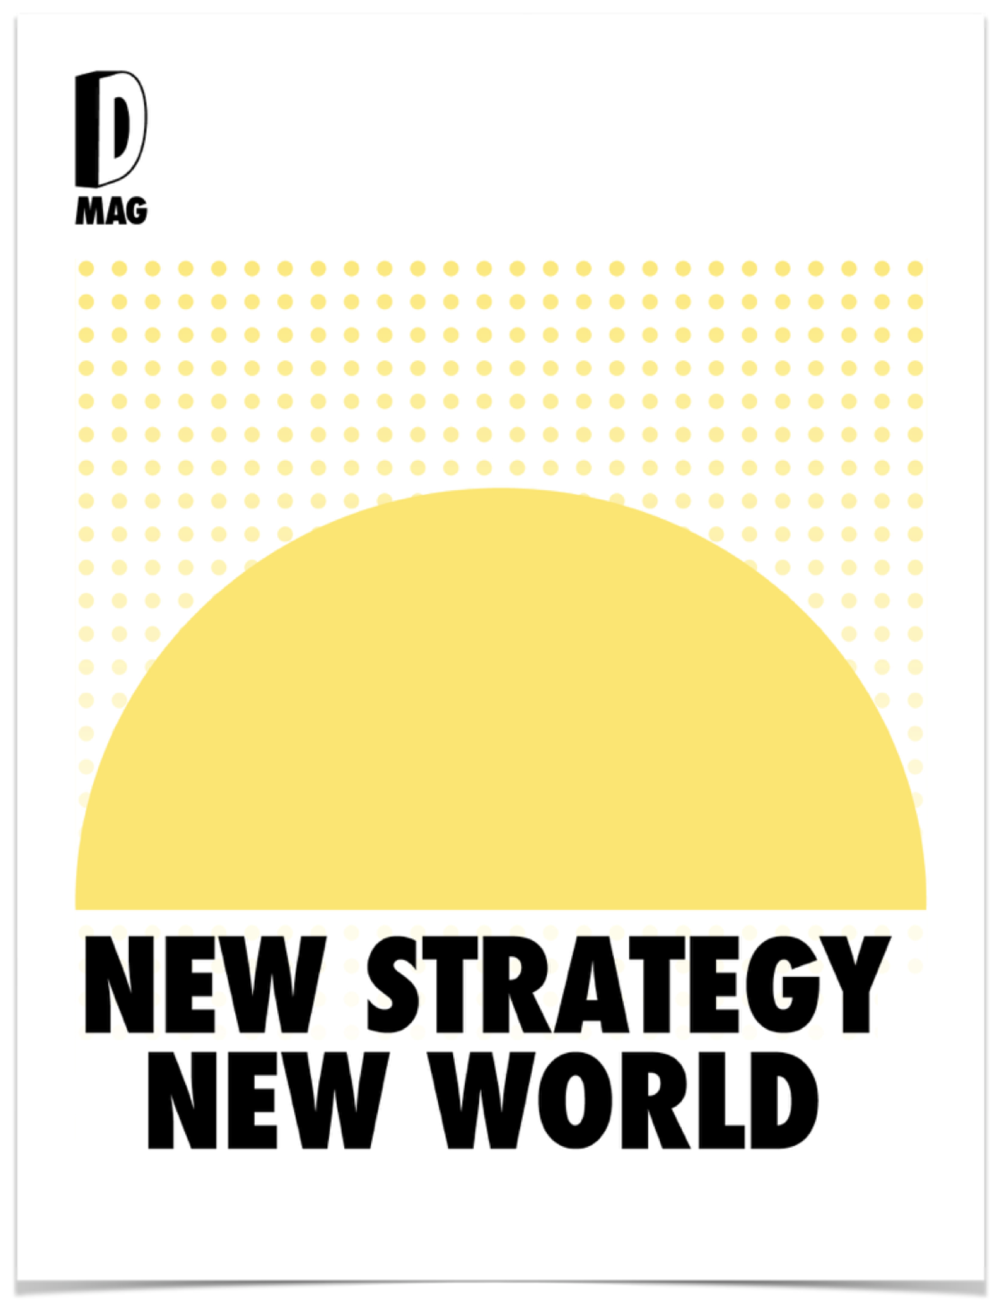 DMAG - DMag is a new magazine from The Future Strategy Club focused solely on disruption theory and practice across all industries. Disruptors, disruptees and experts share their knowledge and strategies helping our members prepare for their futures.